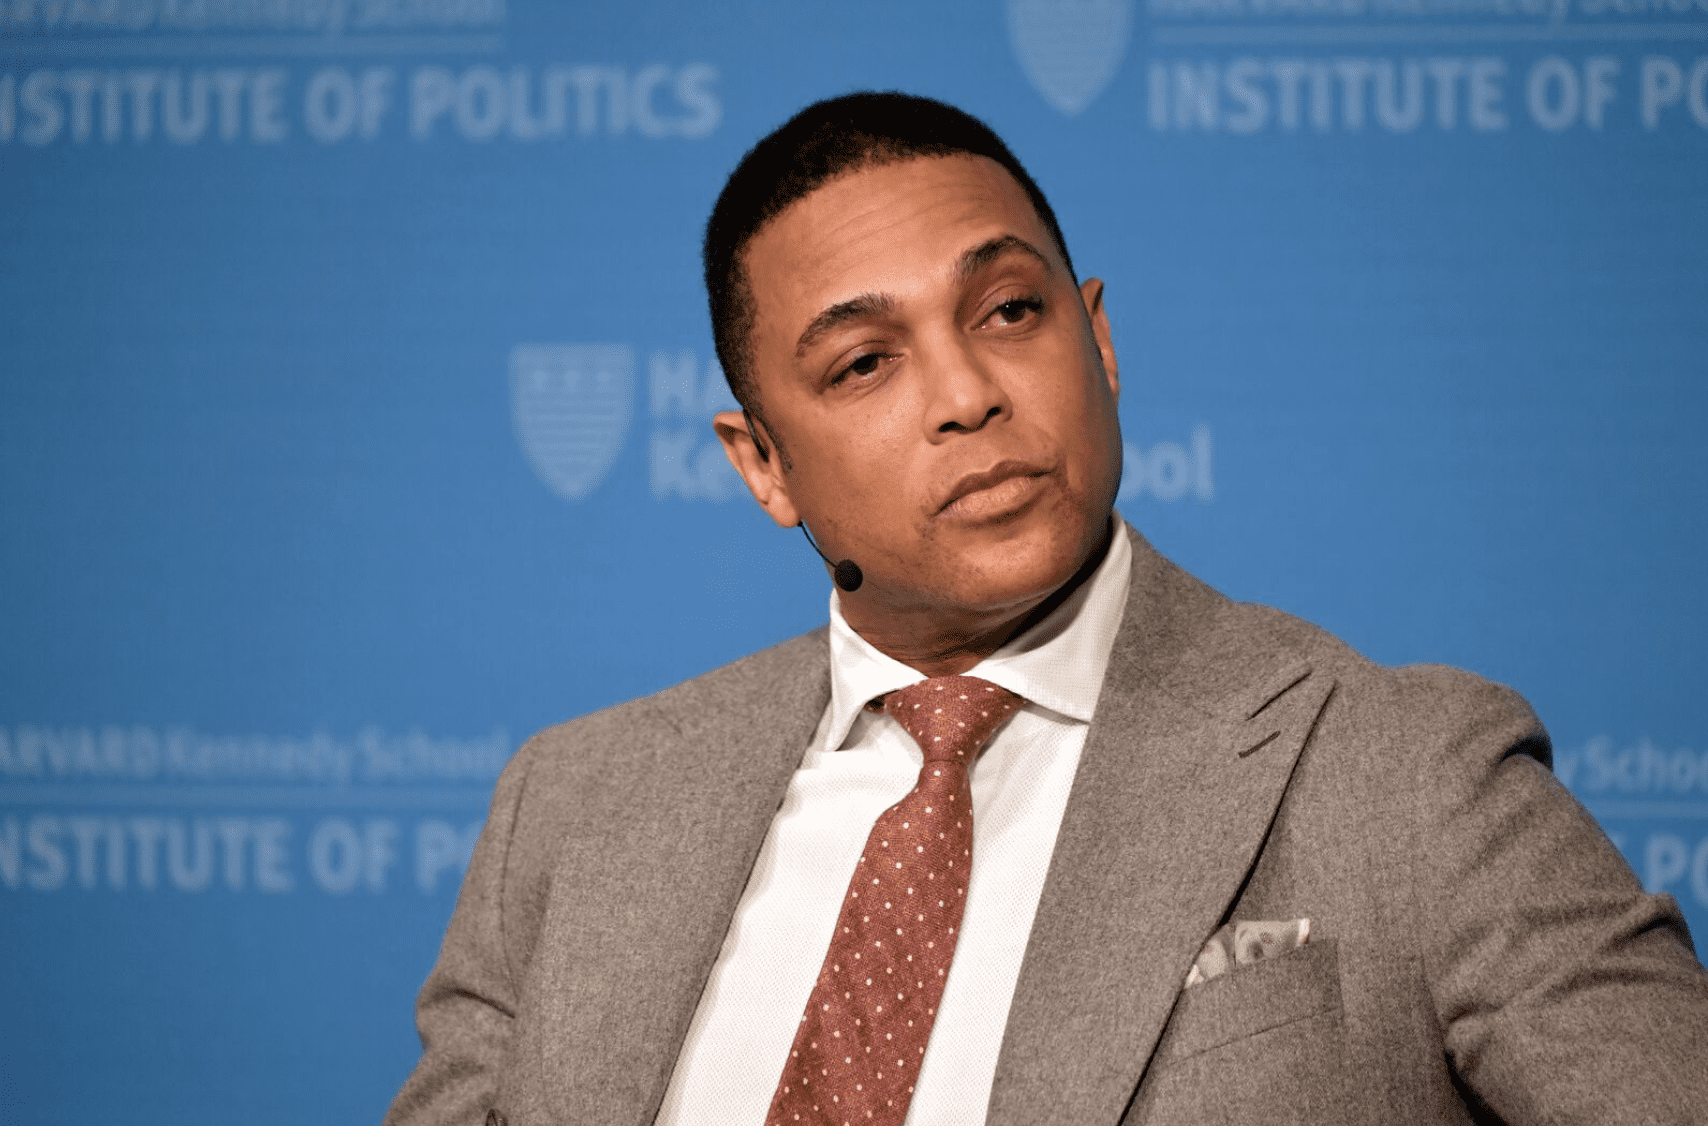 CNN's Don Lemon speaks at Harvard University Kennedy School of Government Institute of Politics on February 22, 2019. | Source: Getty Images